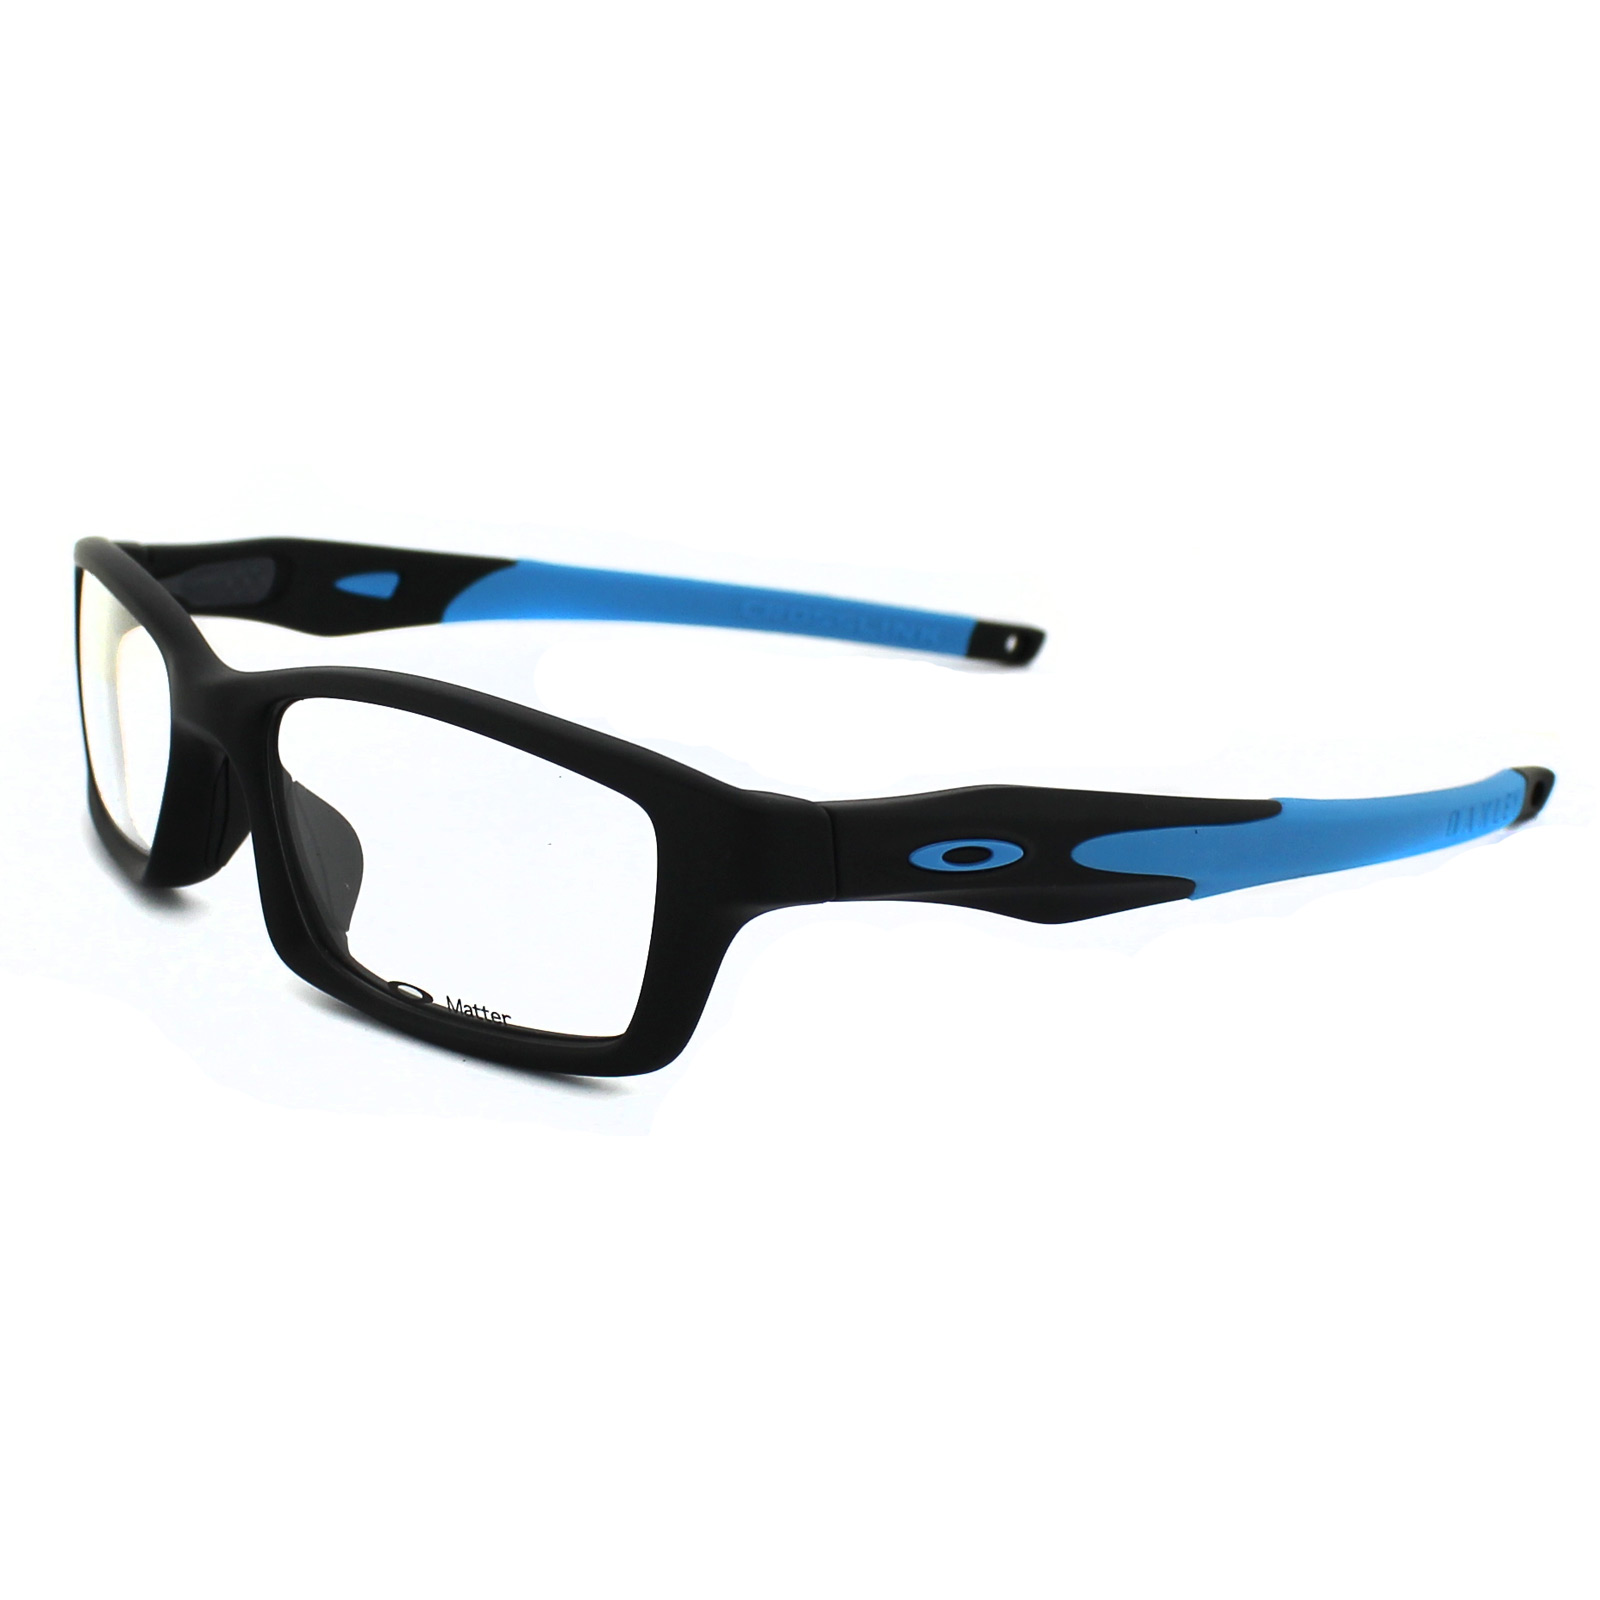 Oakley Glasses Frames Crosslink 8027-01 Satin Black & Sky Blue ...